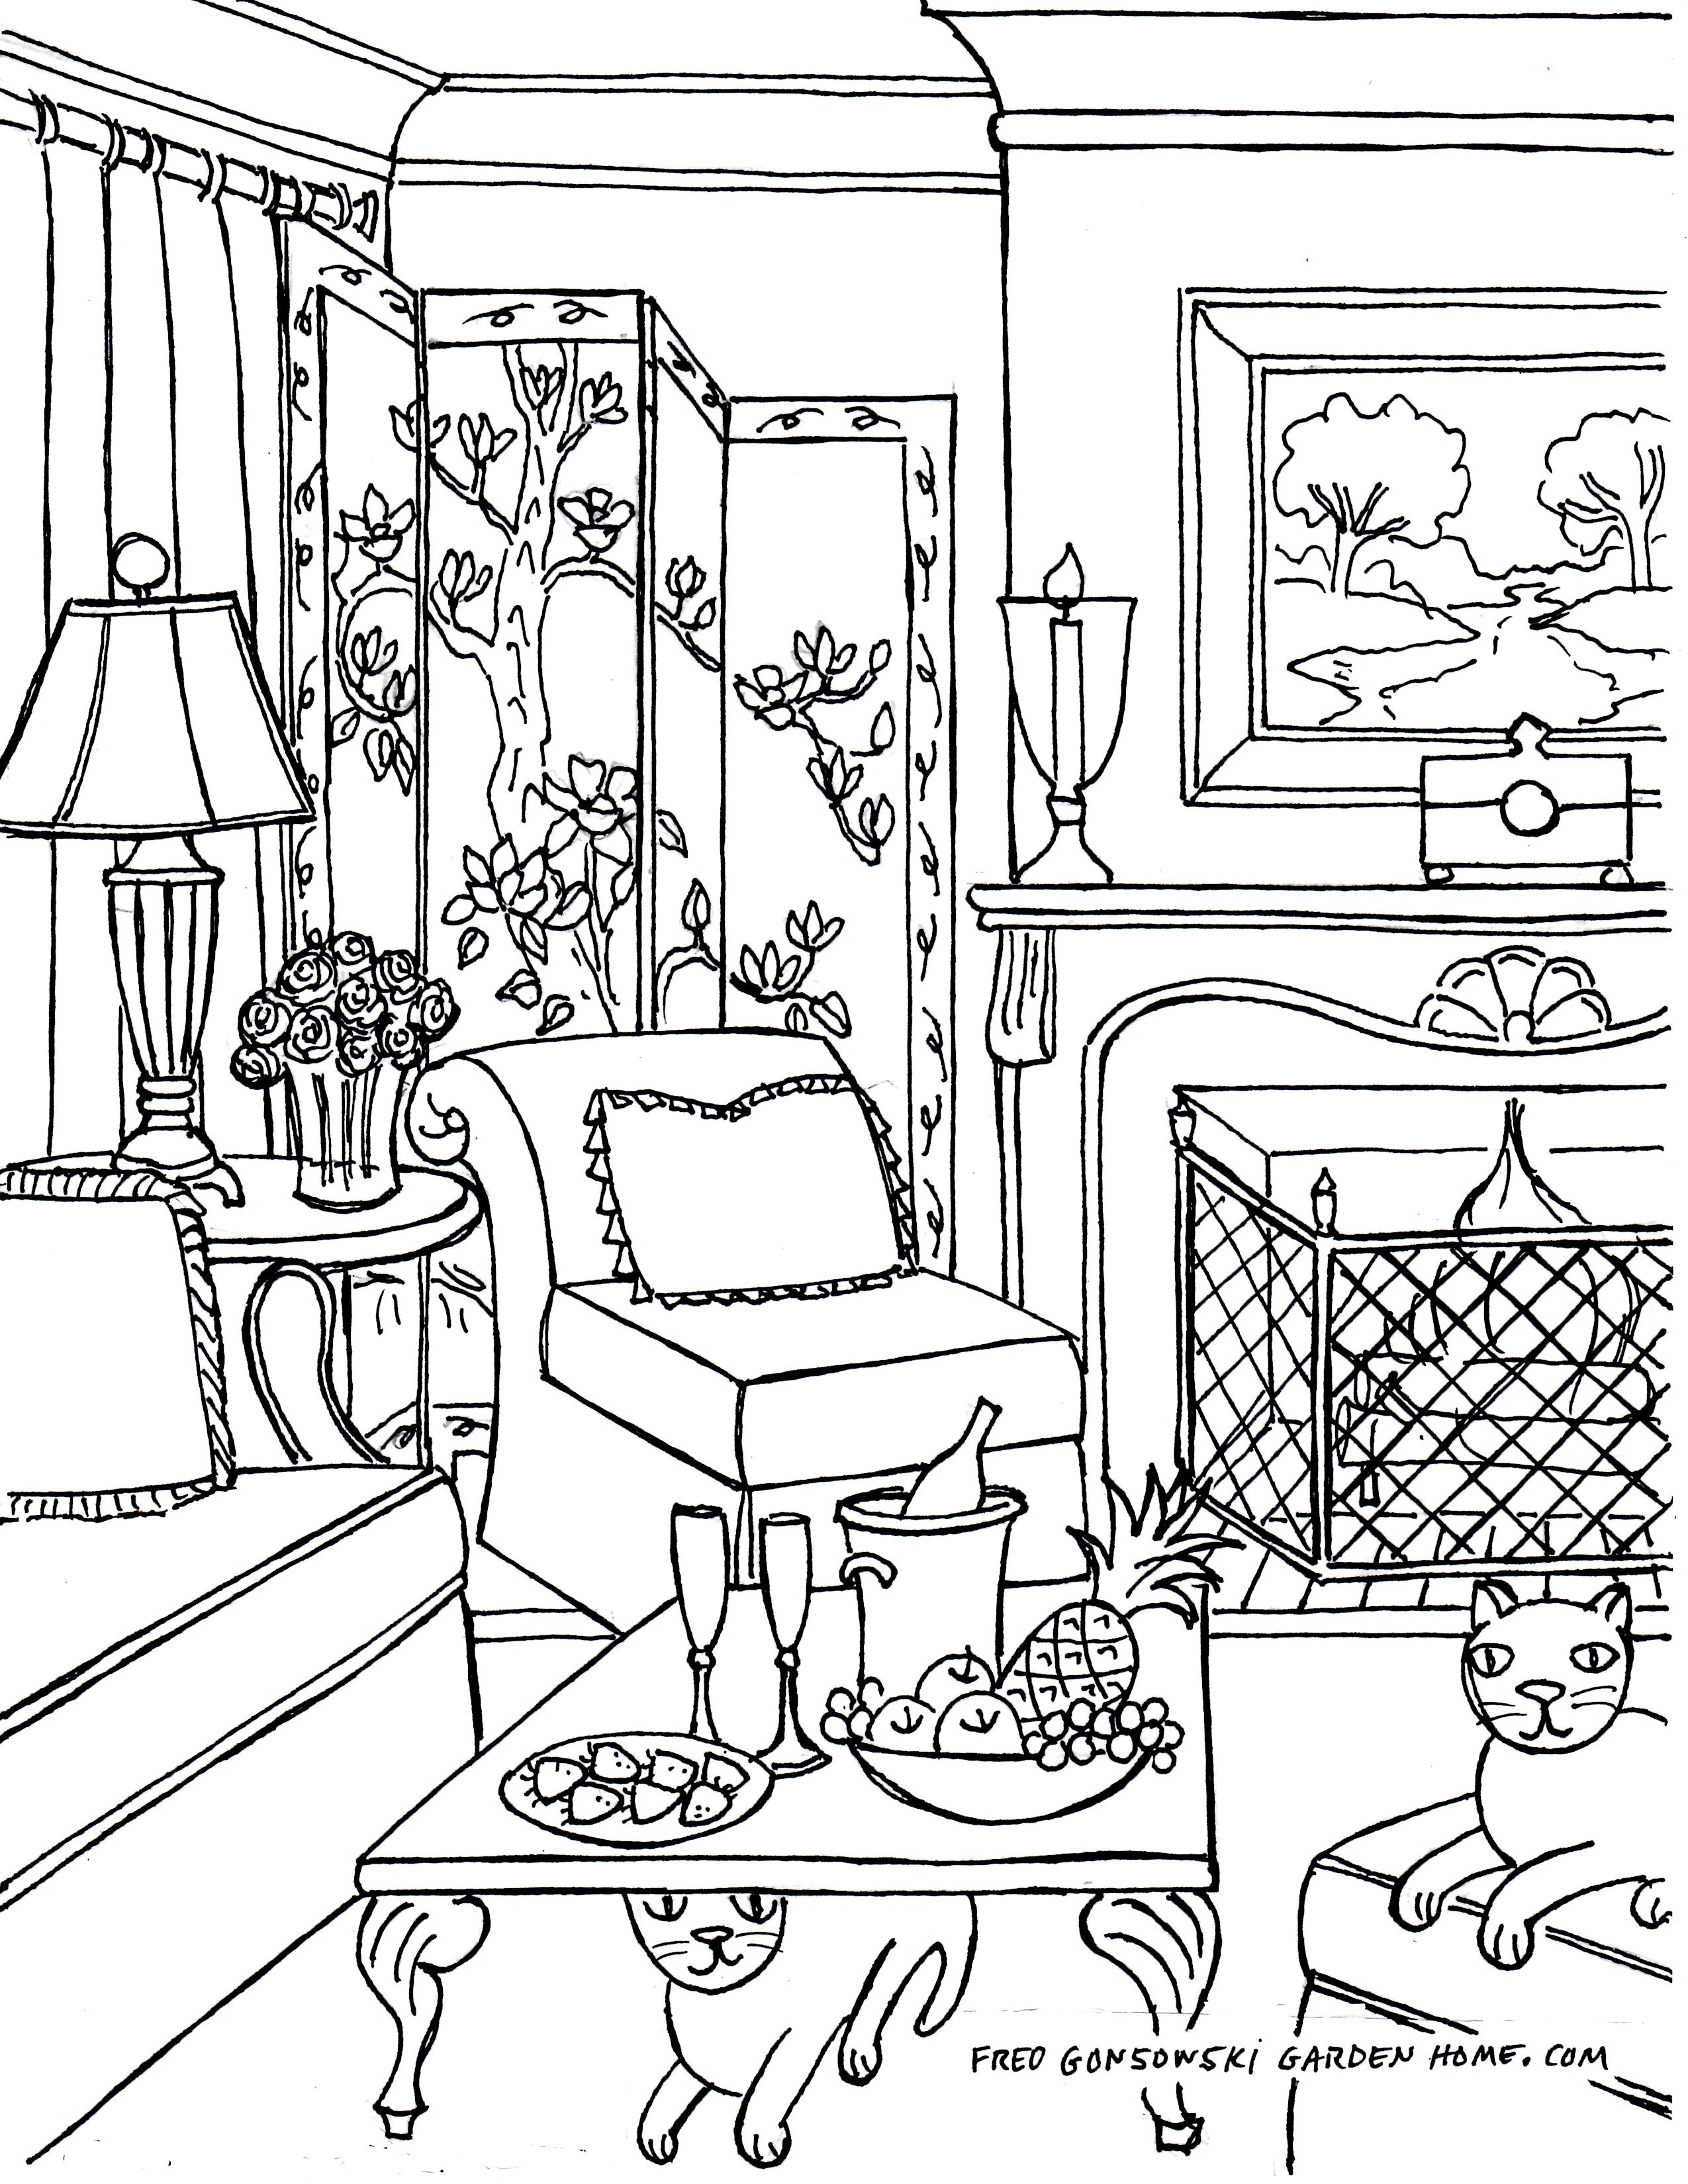 Coloring Pages For Adults Some Drawings Of Living Rooms For Adults To Color